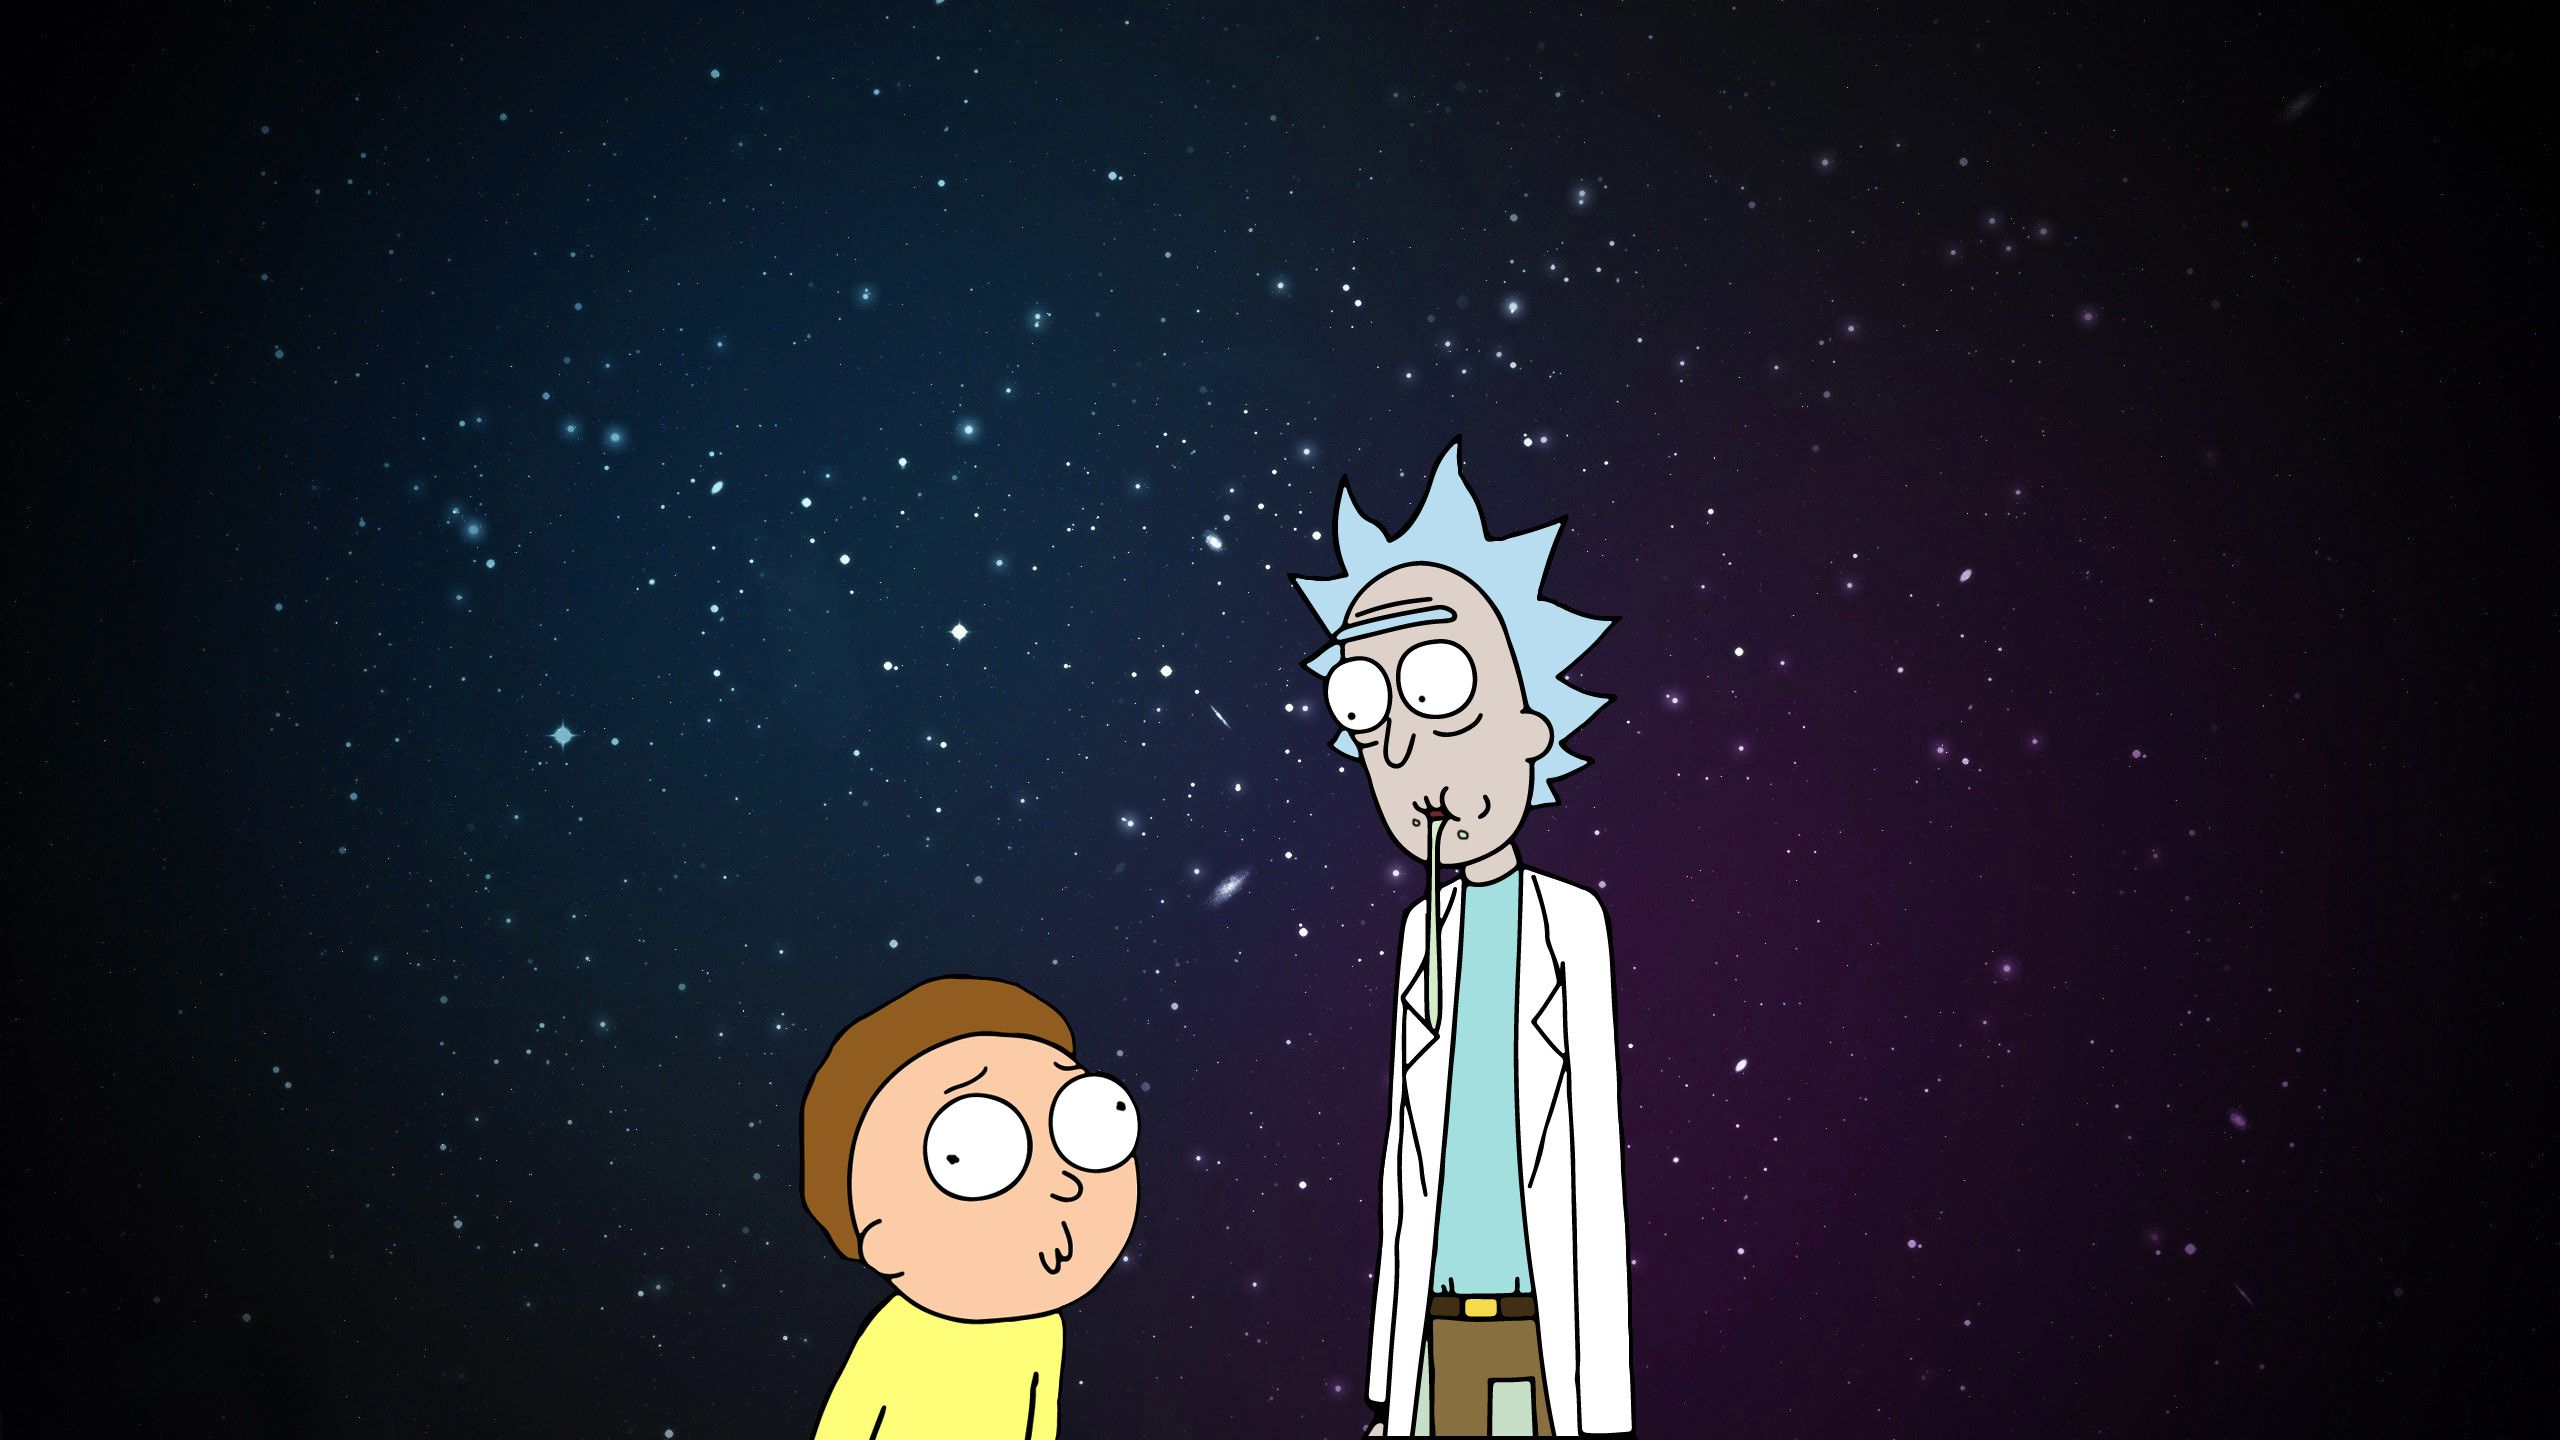 Rick And Morty Wallpaper Fresh 1920 215 1280 Imgur Rick Morty Wallpaper Album In 2020 Rick And Morty Image Cartoon Wallpaper Rick I Morty